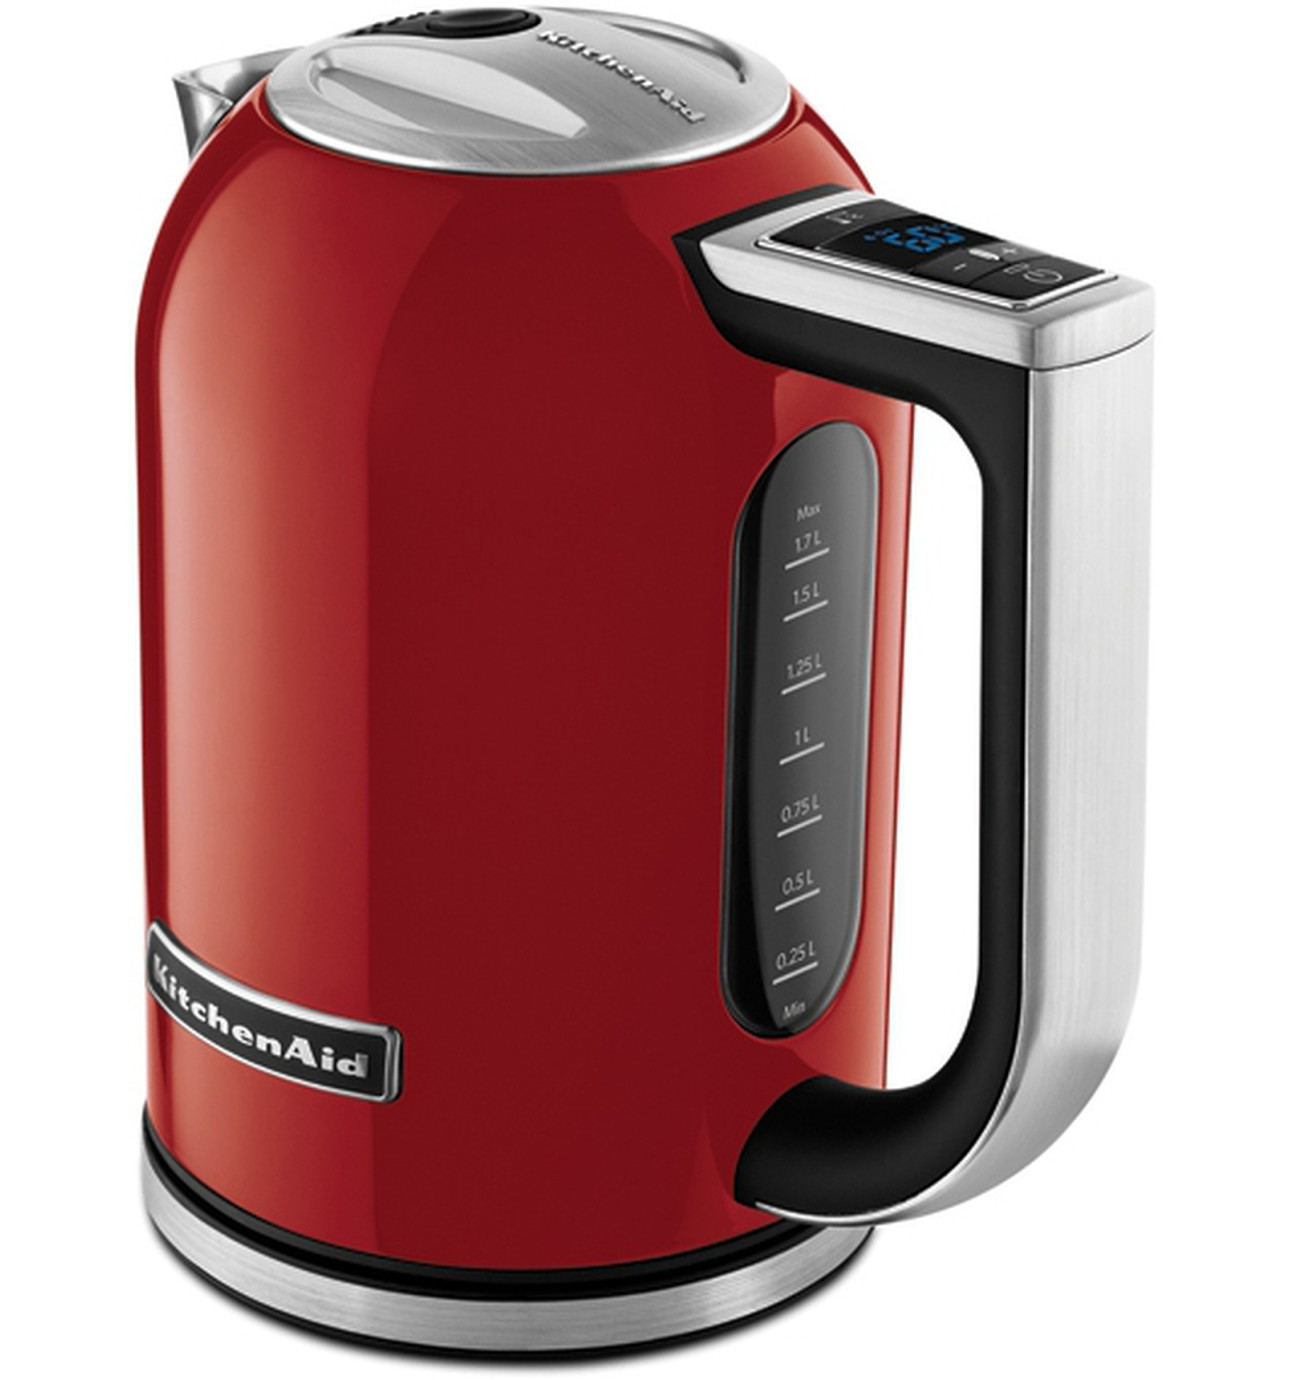 Aldi home sale catalogue special buys stirling 34l microwave oven - Kek1722 1 7l Kettle Empire Red